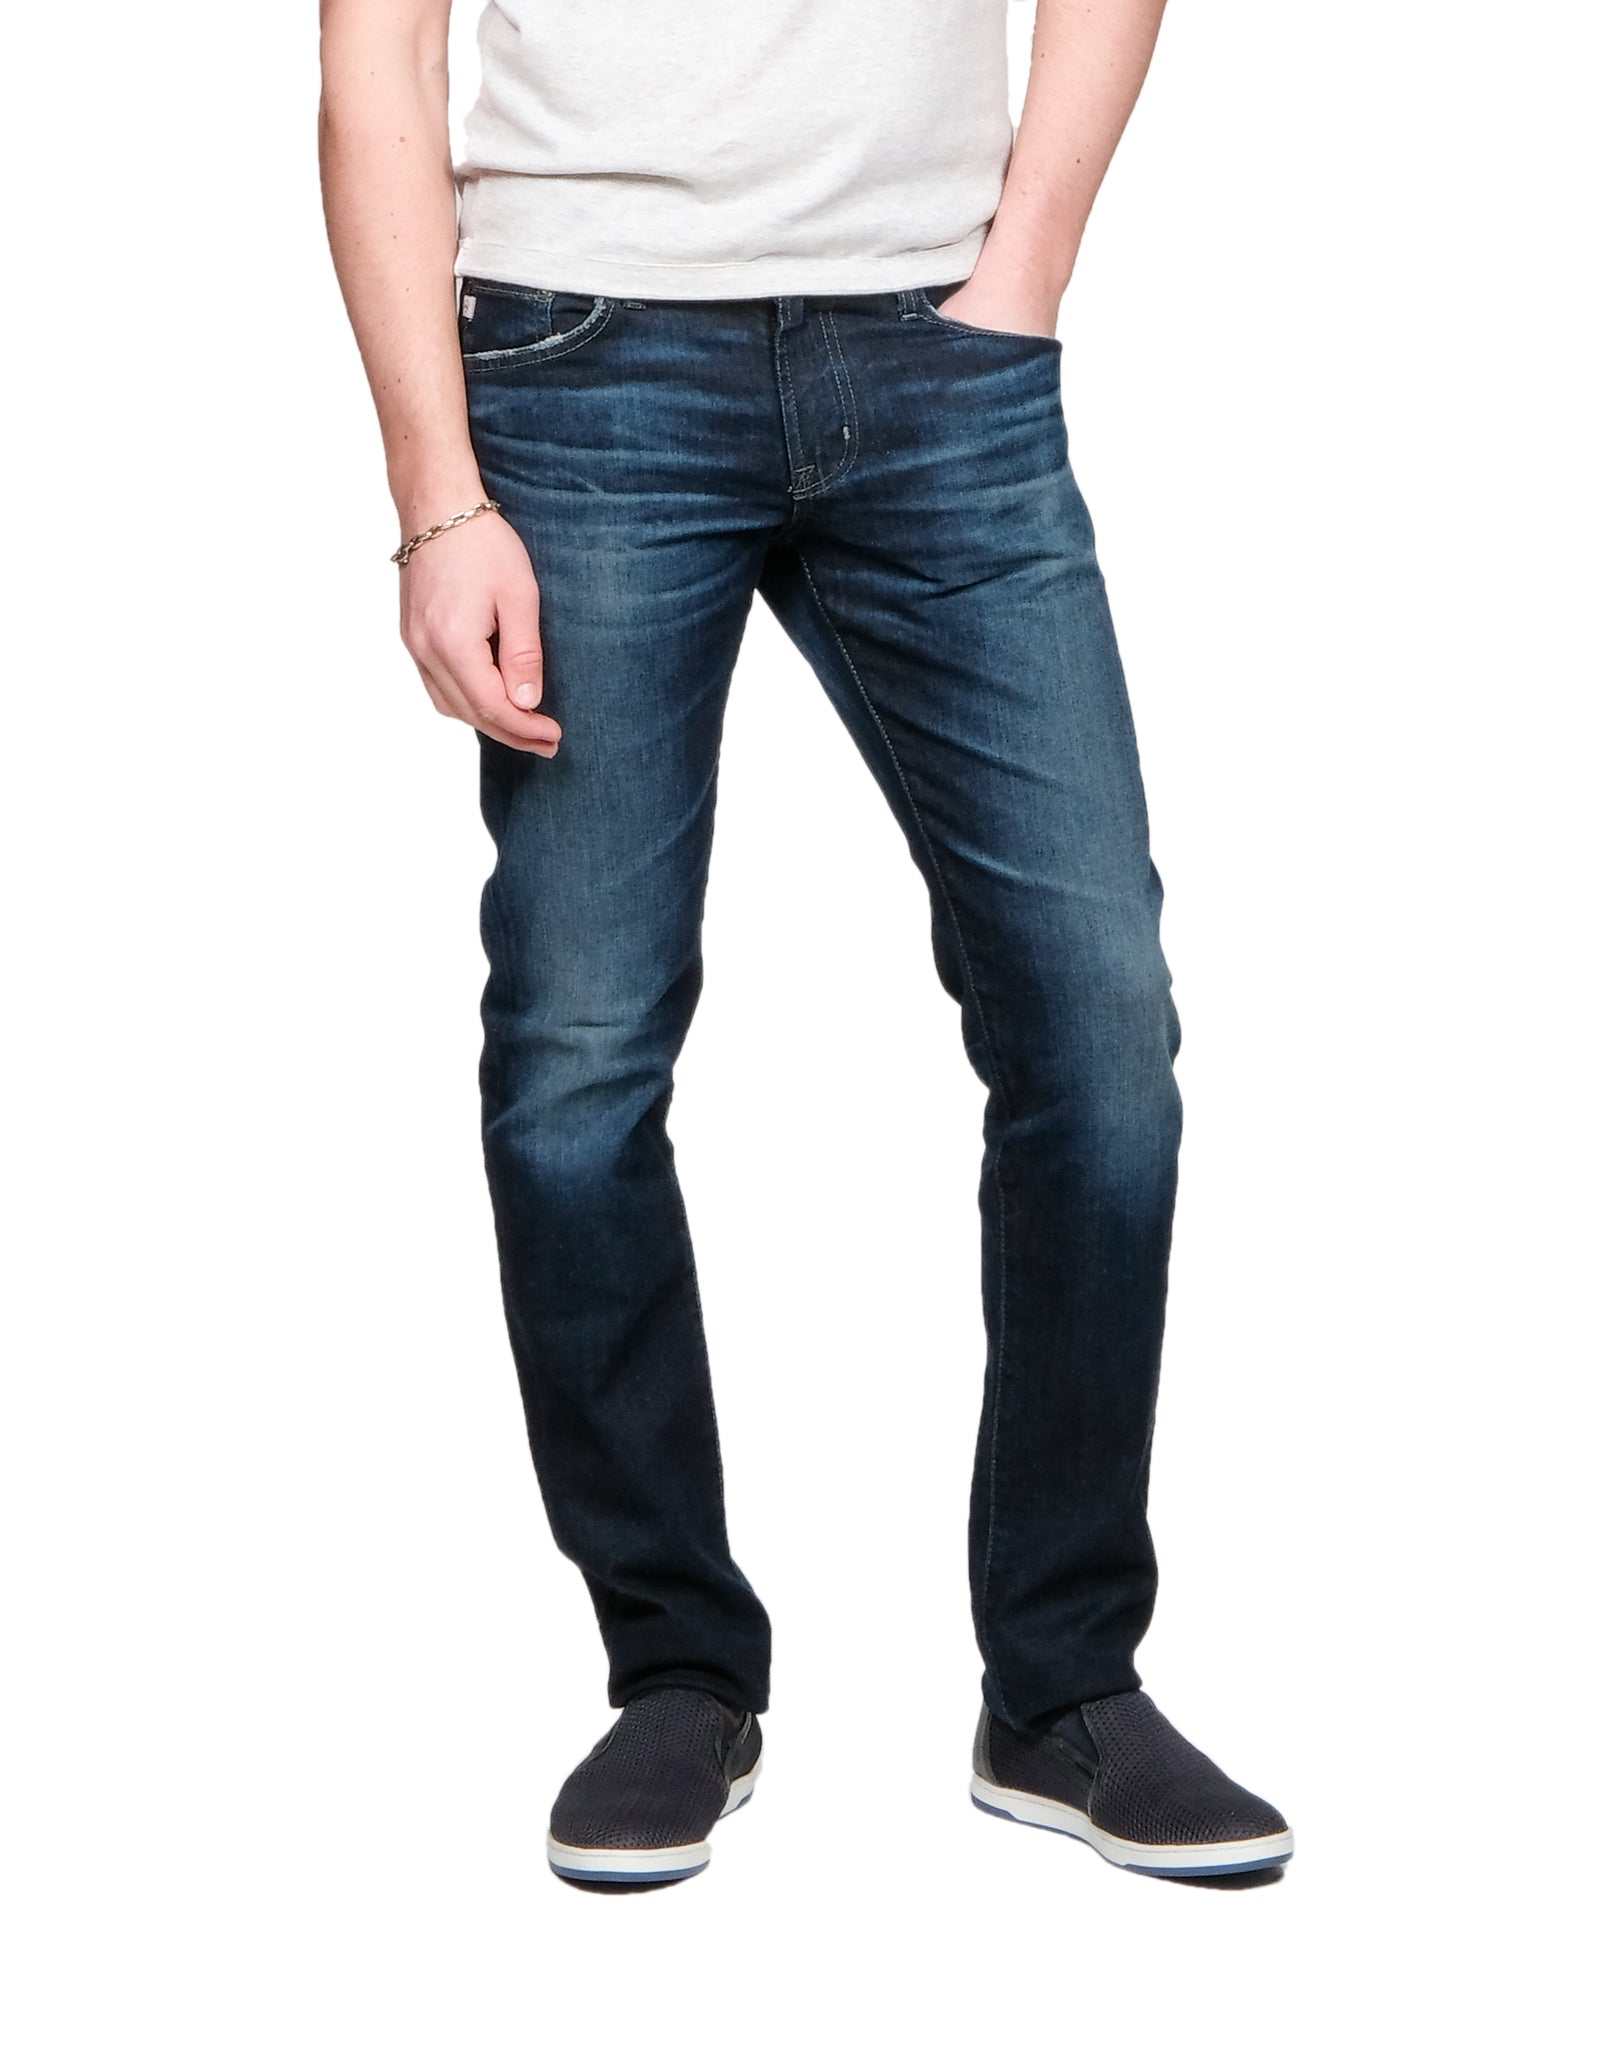 Dylan Slim Skinny Jean (4 Years Chase) - Mr. Derk Apparel Ltd.